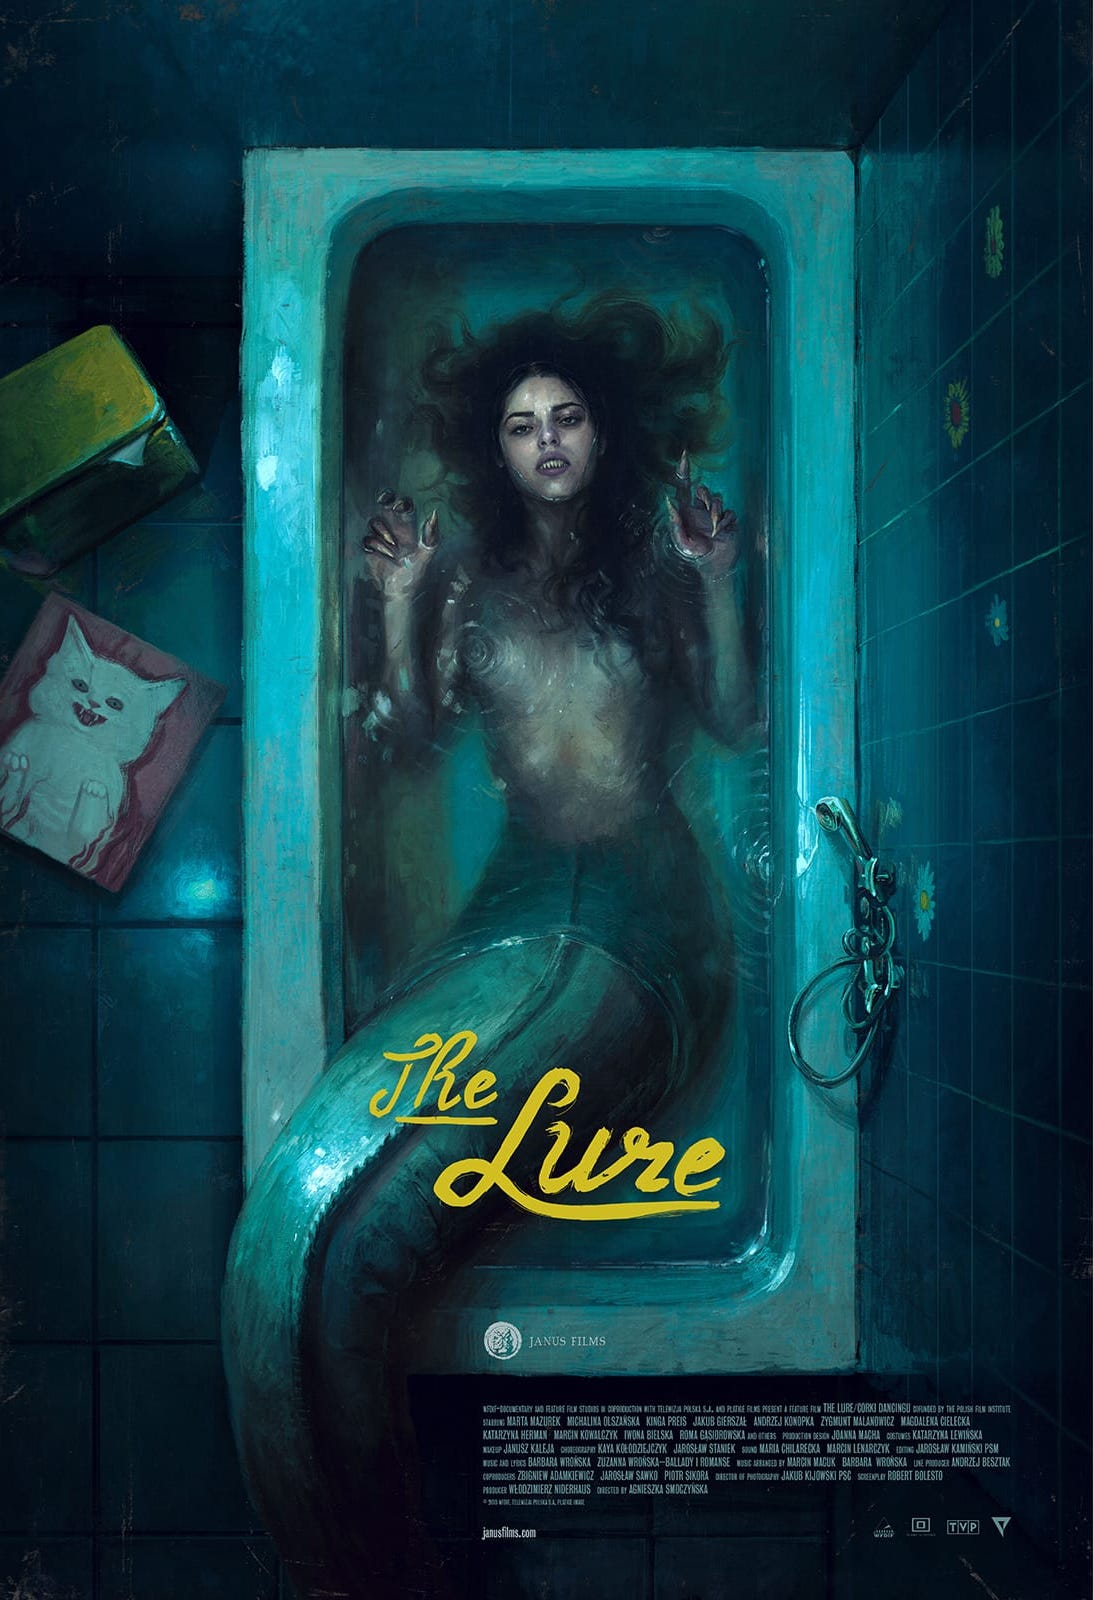 The Lure, directed by Agnieszka Smoczynska